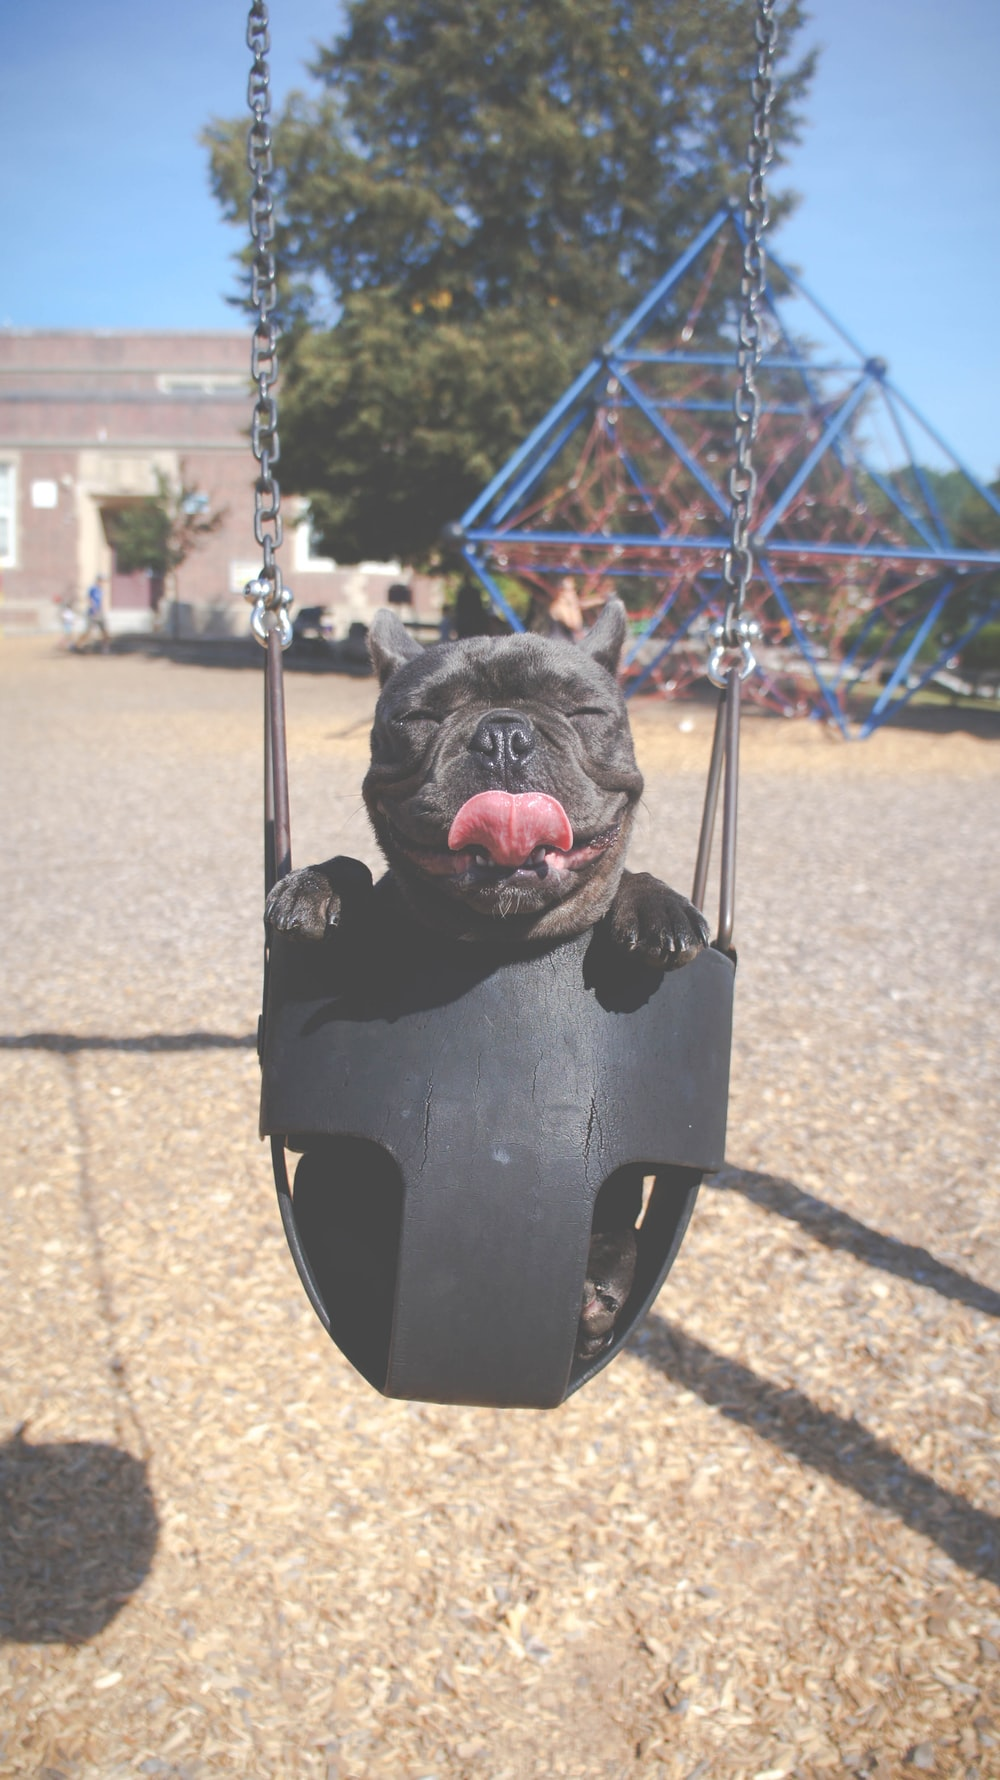 Dog sways in a child seat on a swing set